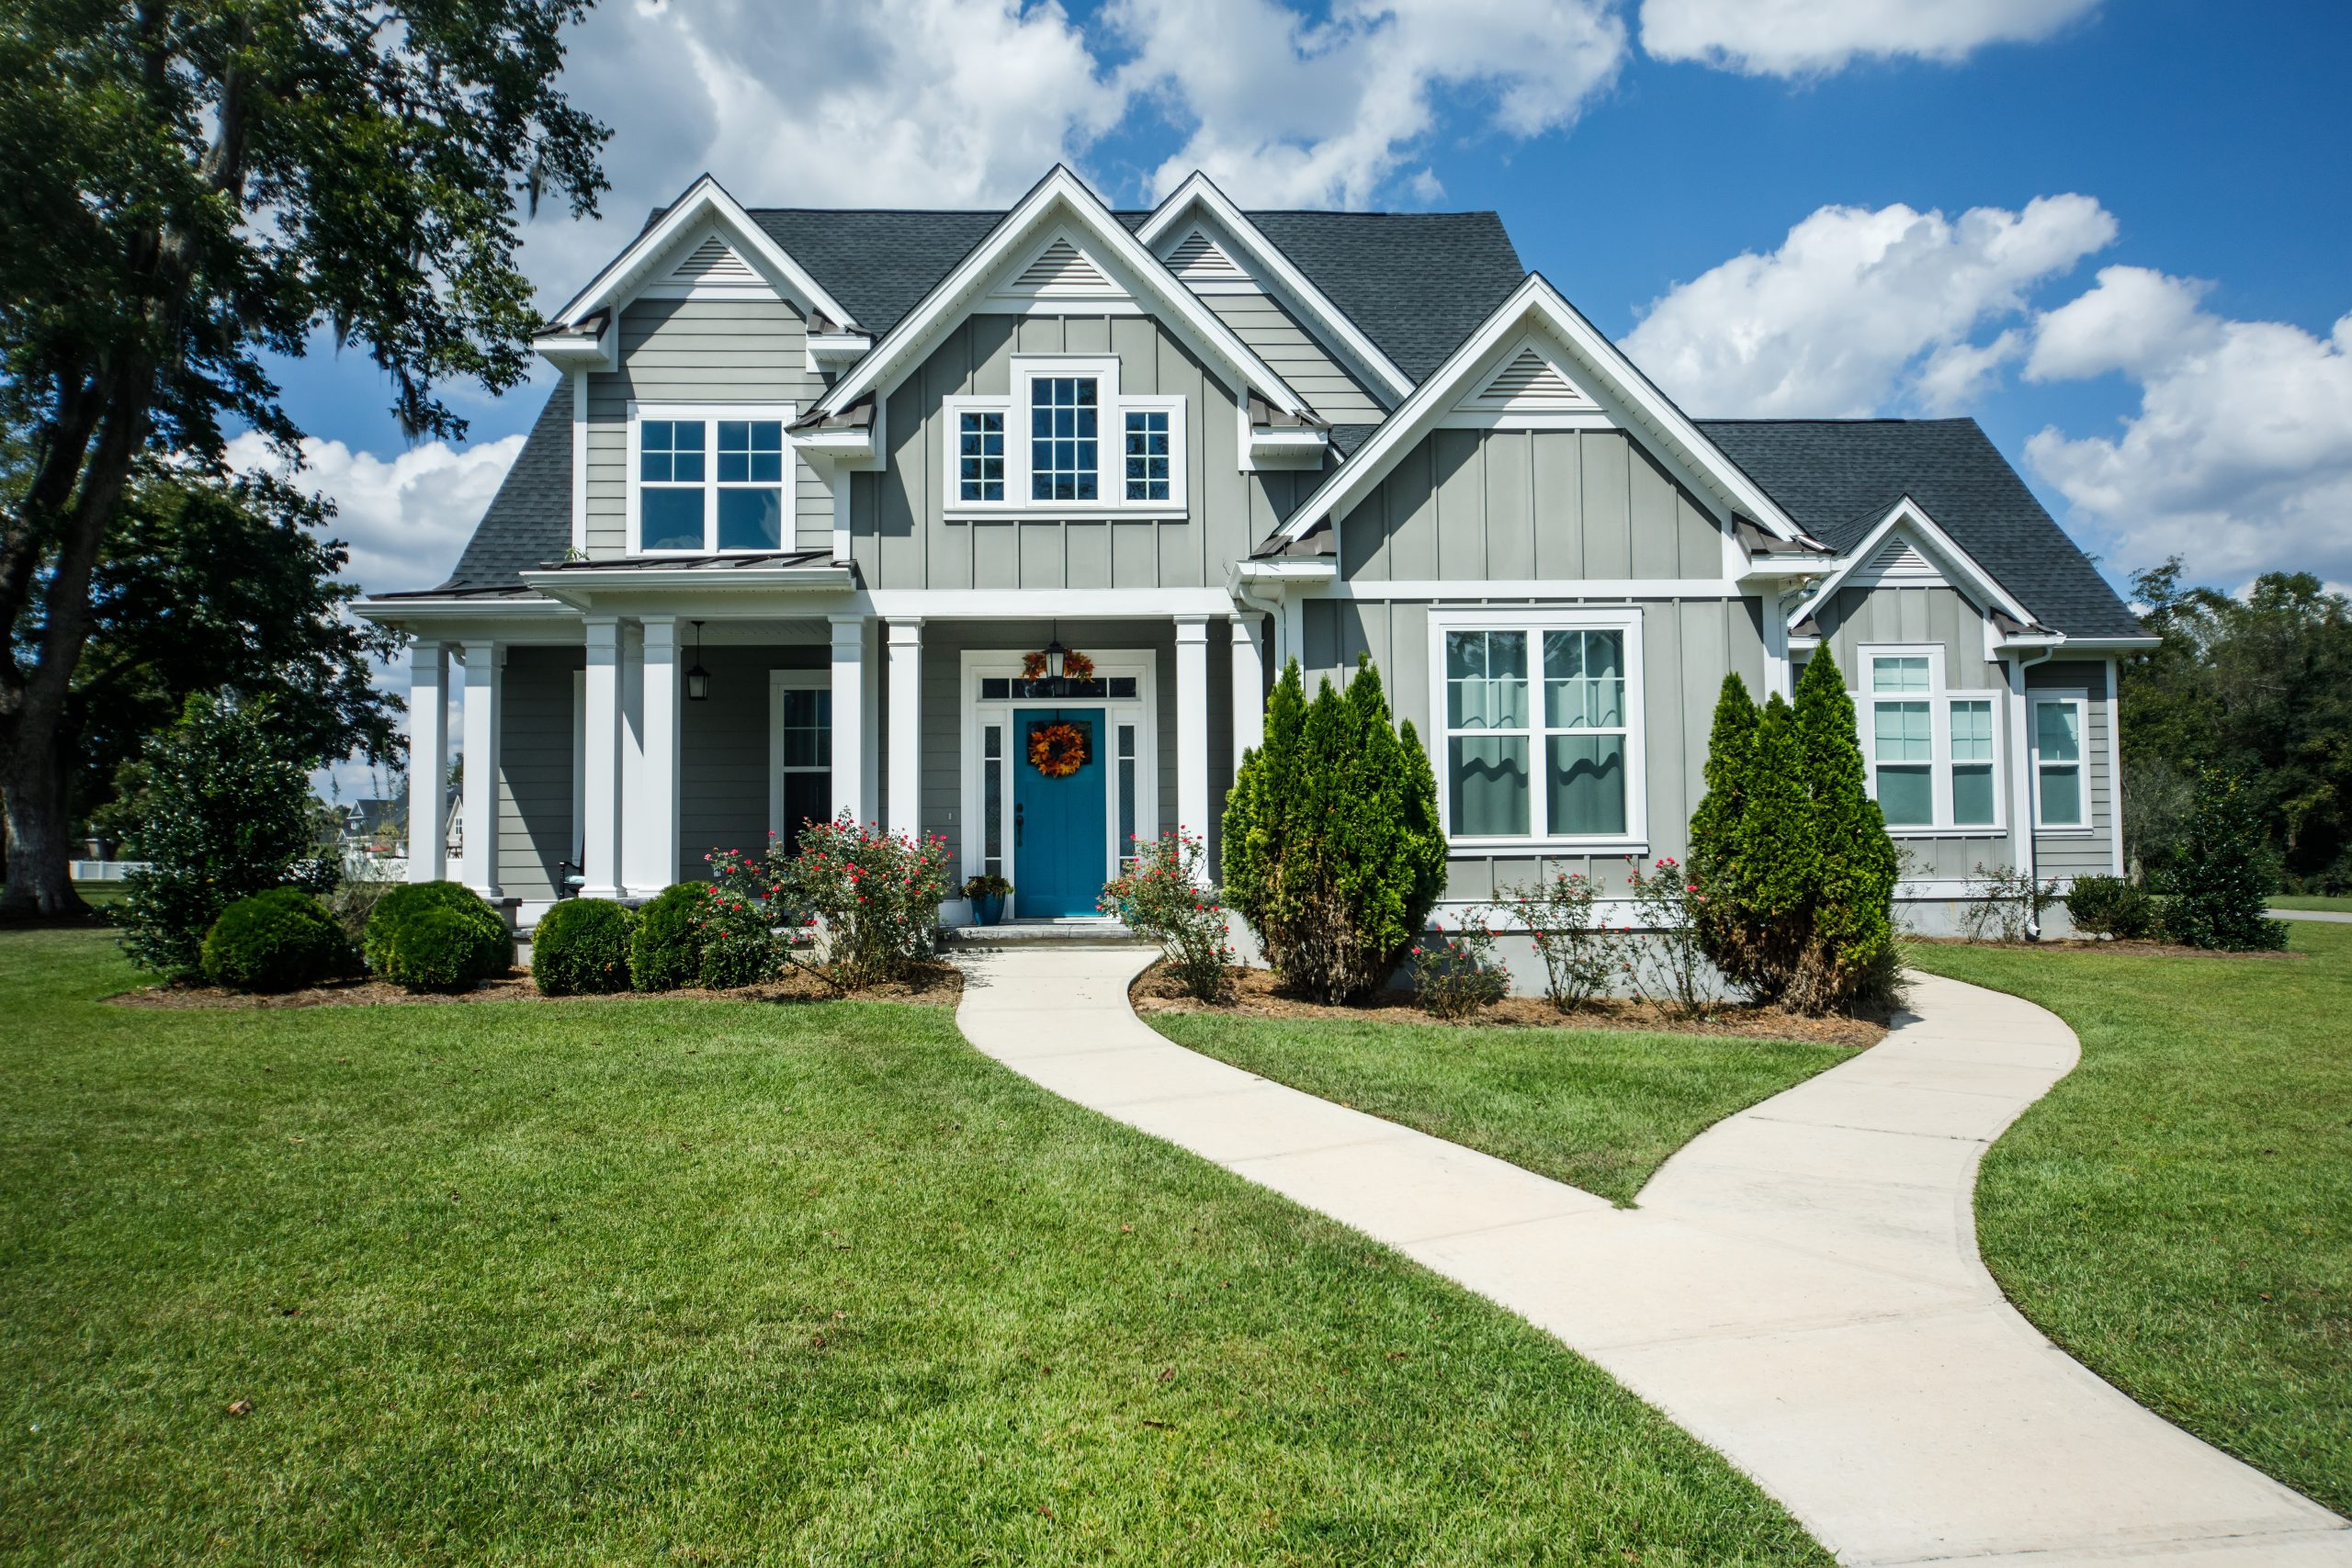 Gray New Construction Modern Cottage Home with Hardy Board Siding and Teal Door with Curb Appeal